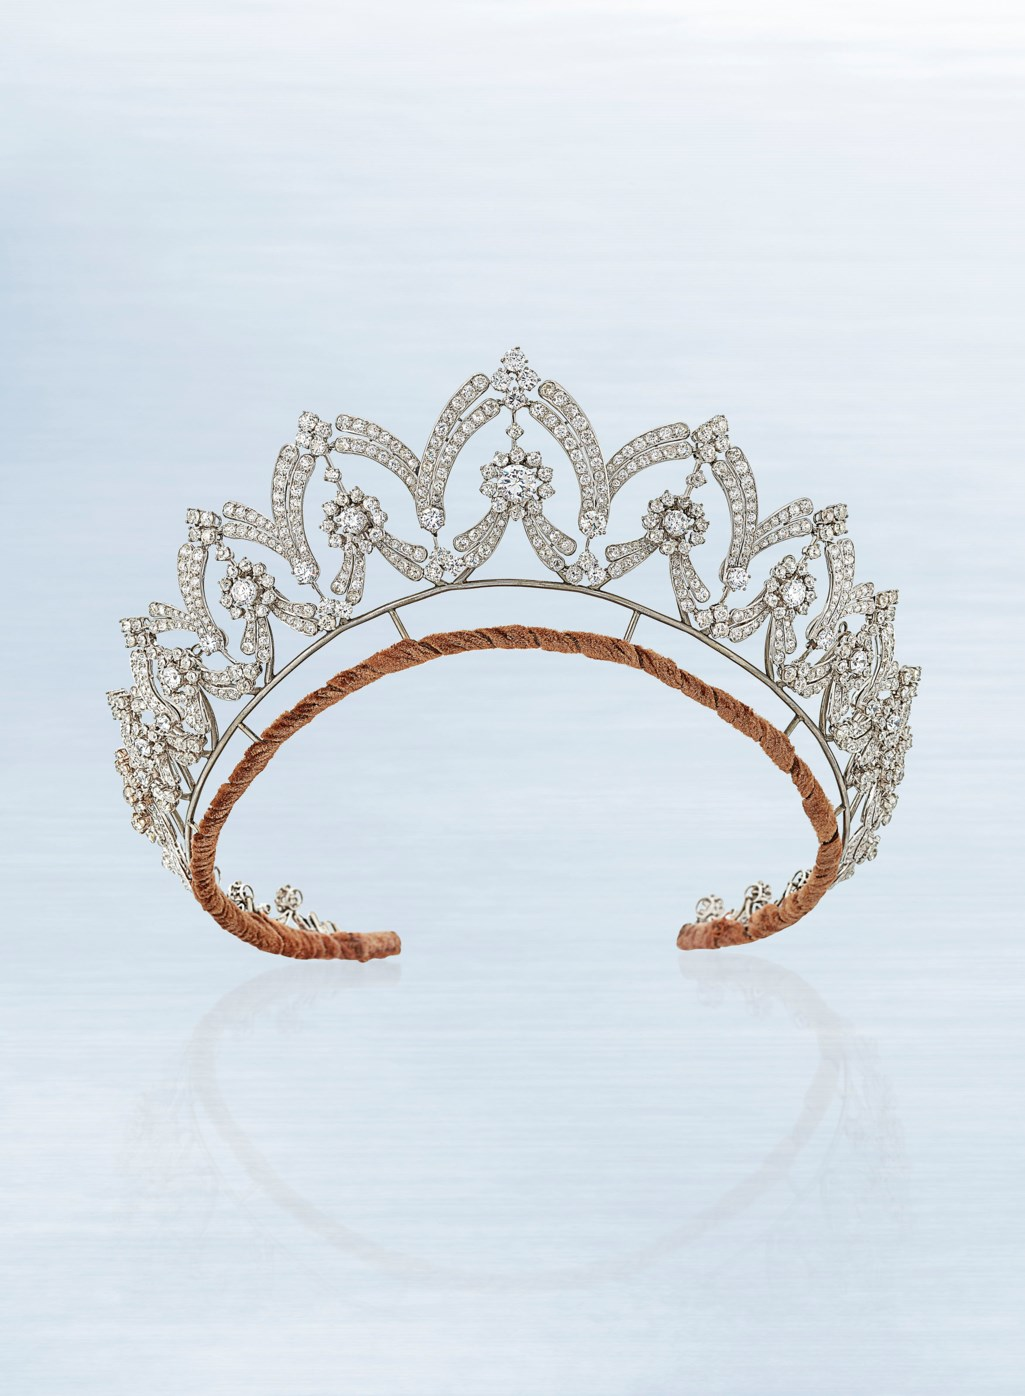 ART DÉCO DIAMOND TIARA/NECKLACE, BOUCHERON